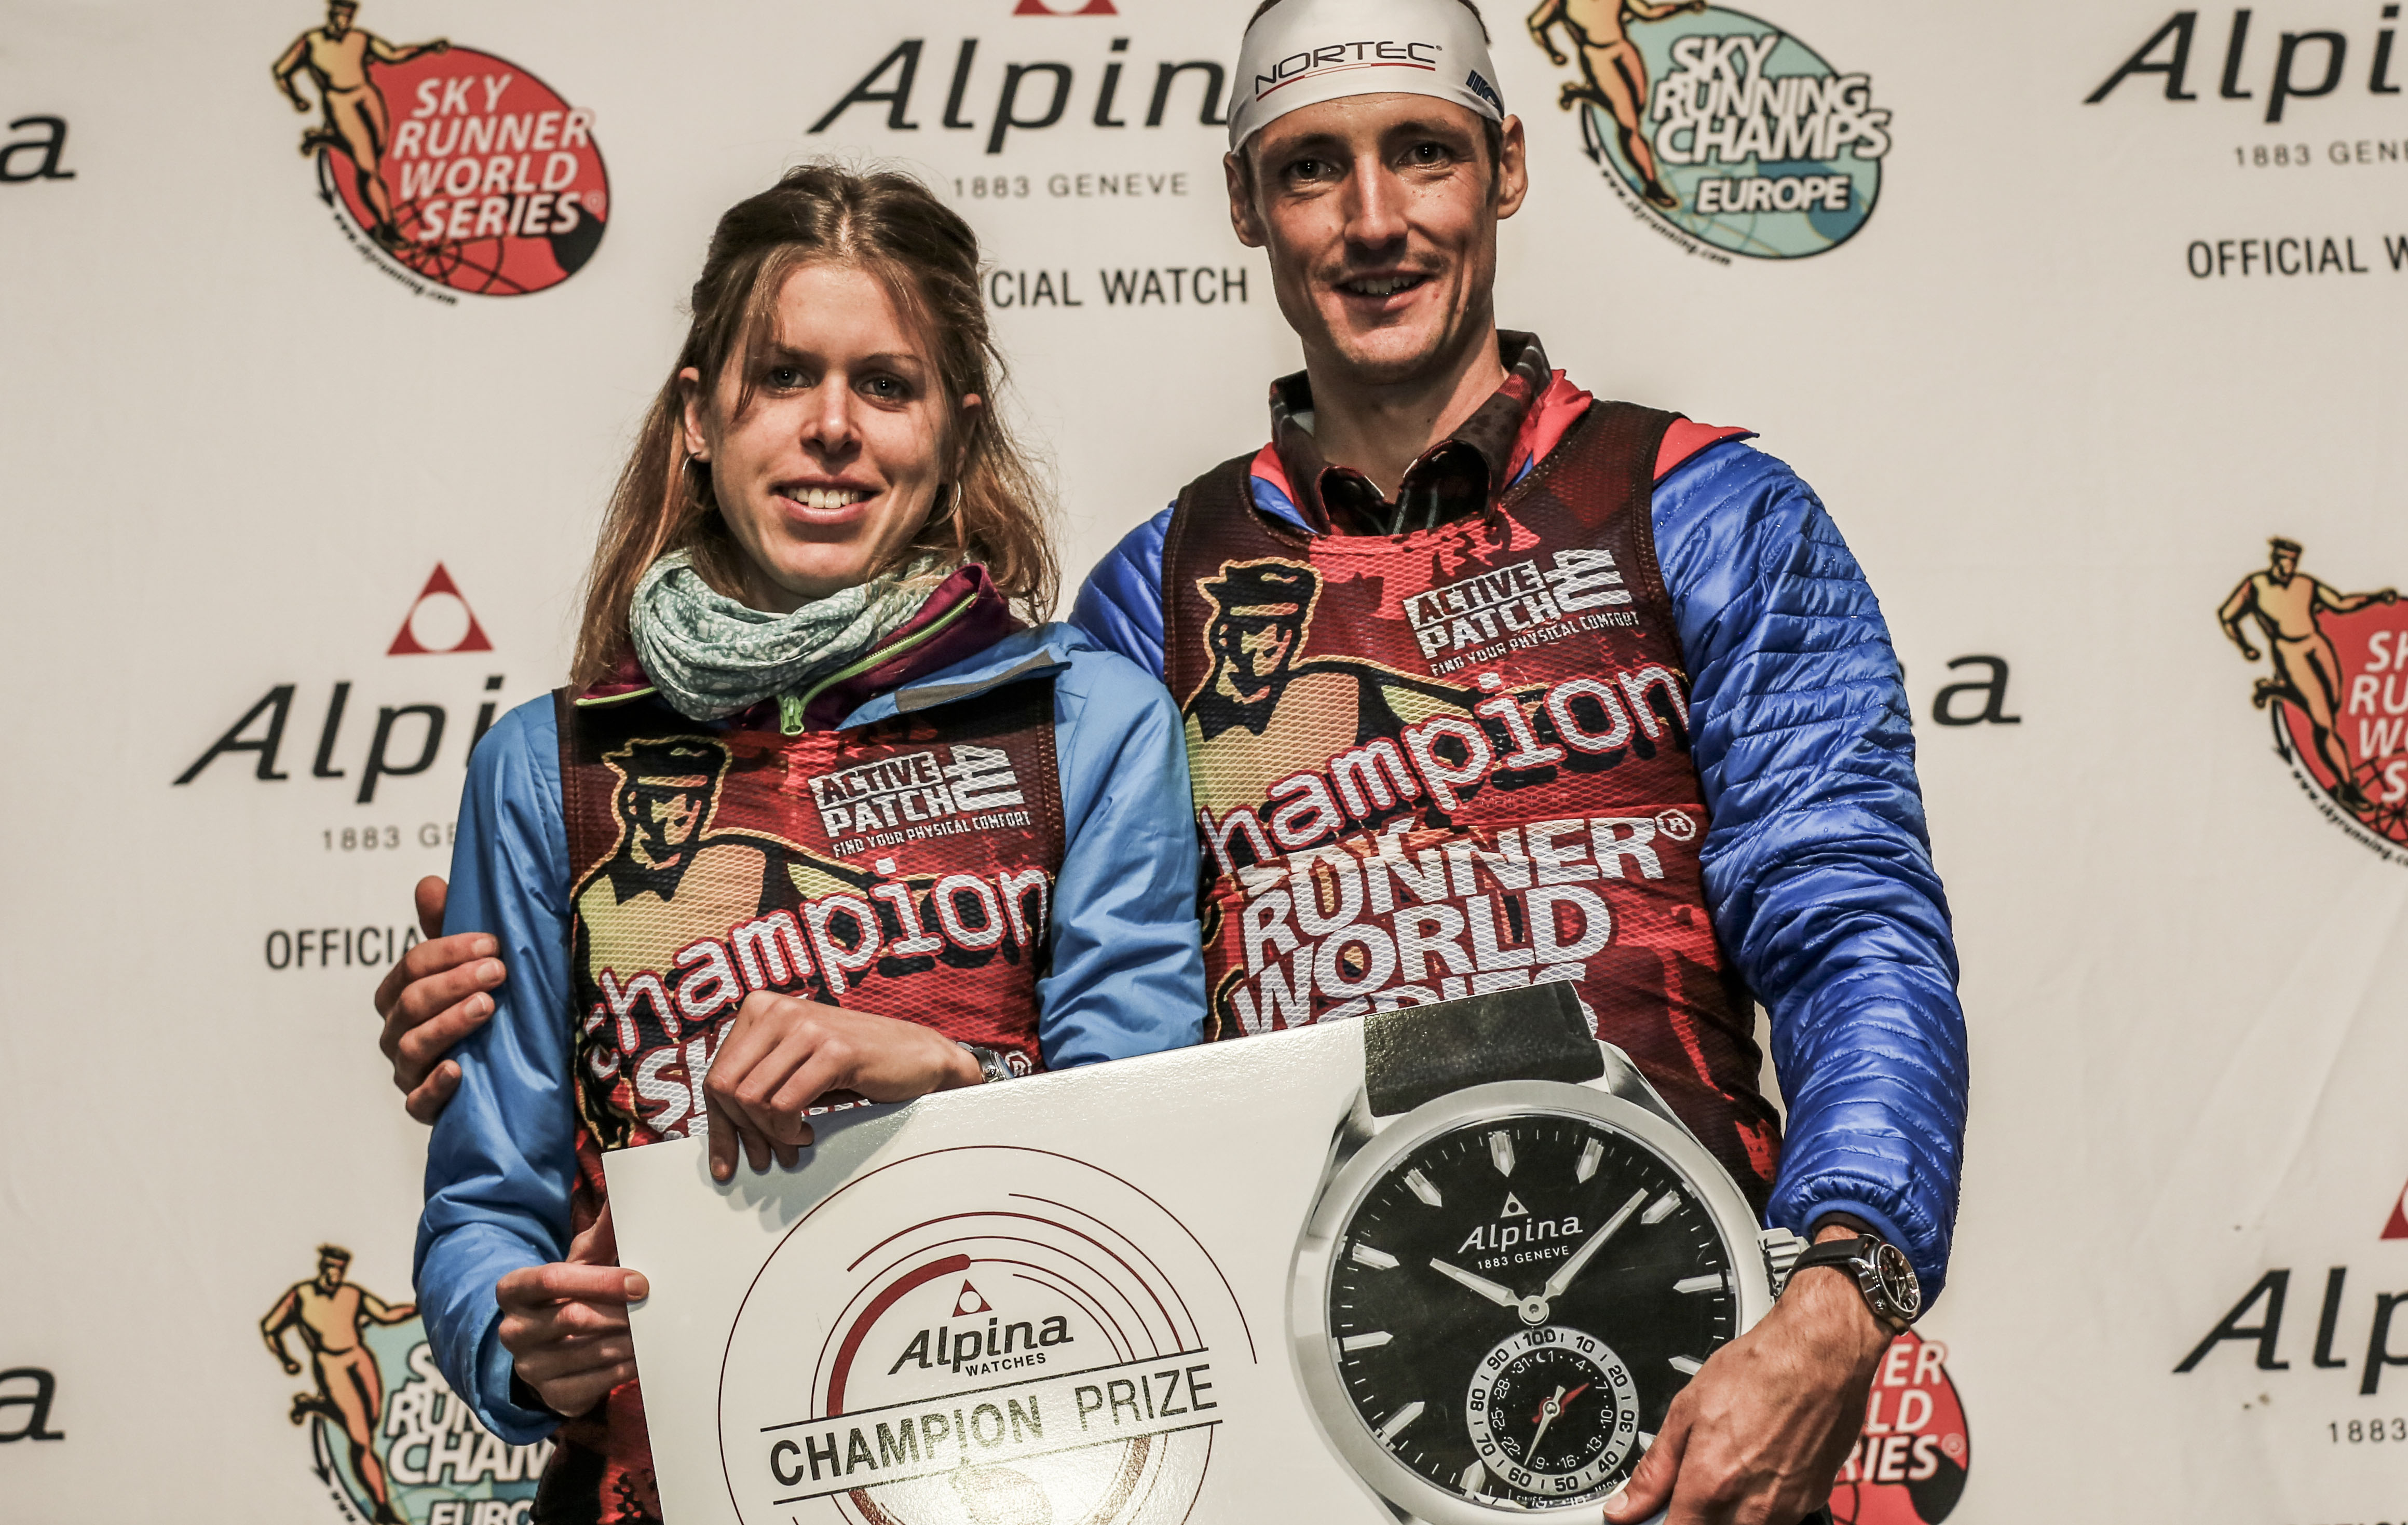 Sky Series Champions Laura Orgue & Tadei Pivk receive Alpina Smartwatch. (c)iancorless.com